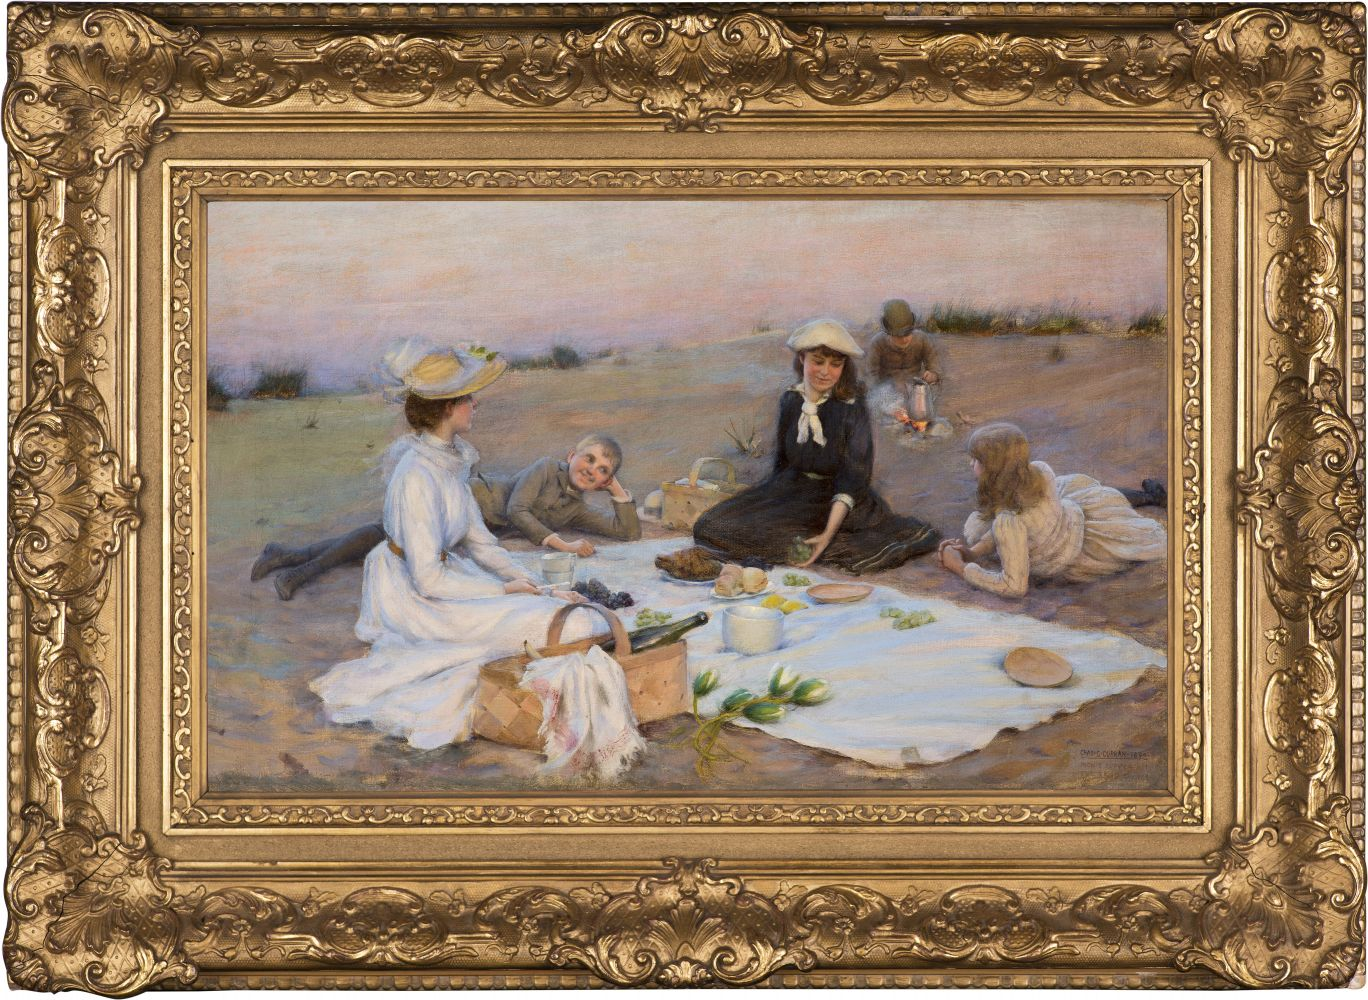 Charles Courtney Curran (1861–1942), Picnic Supper on the Sand Dunes, 1890, oil on canvas, 12 x 20 in., signed, dated, and titled lower right: Chas. C. Curran 1890 / Picnic Supper on / the Sand Dunes (framed)